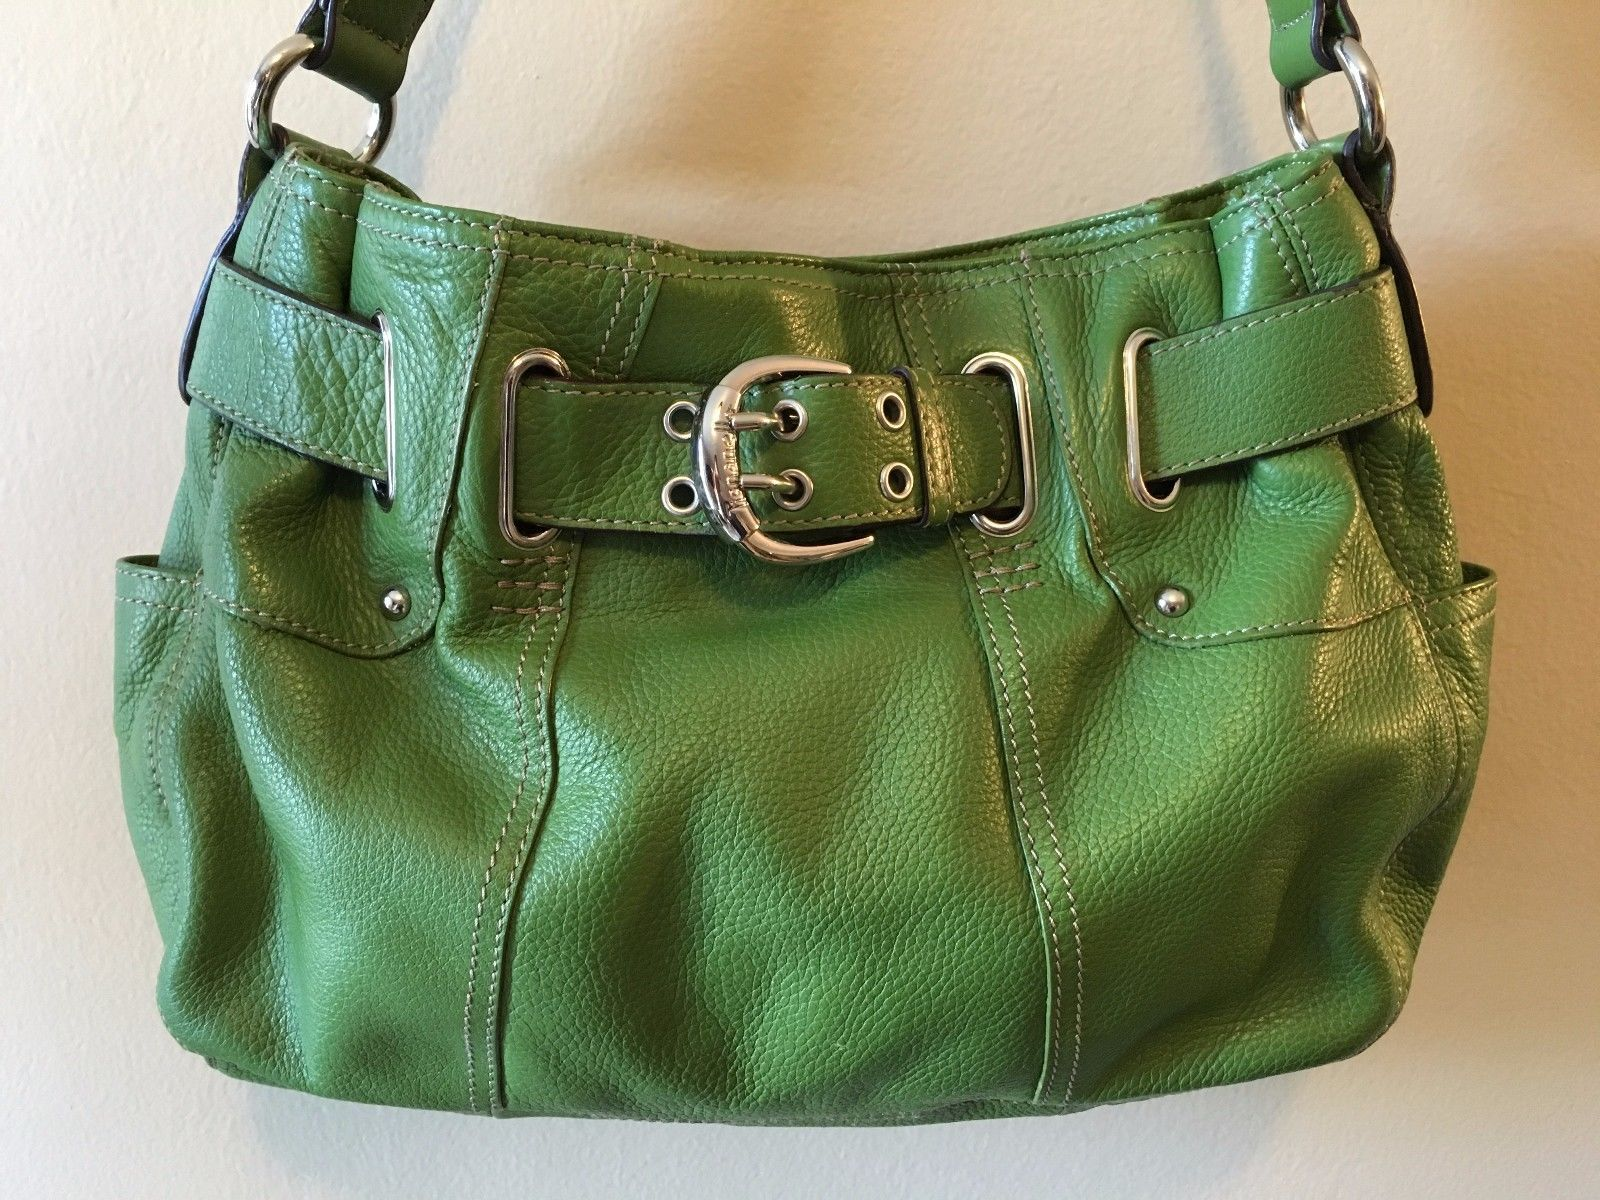 592d4ebe16 57. 57. Previous. Tignanello Green Pebbled Leather Buckle Belted Shoulder  Satchel Purse Bag PB2 · Tignanello Green Pebbled ...